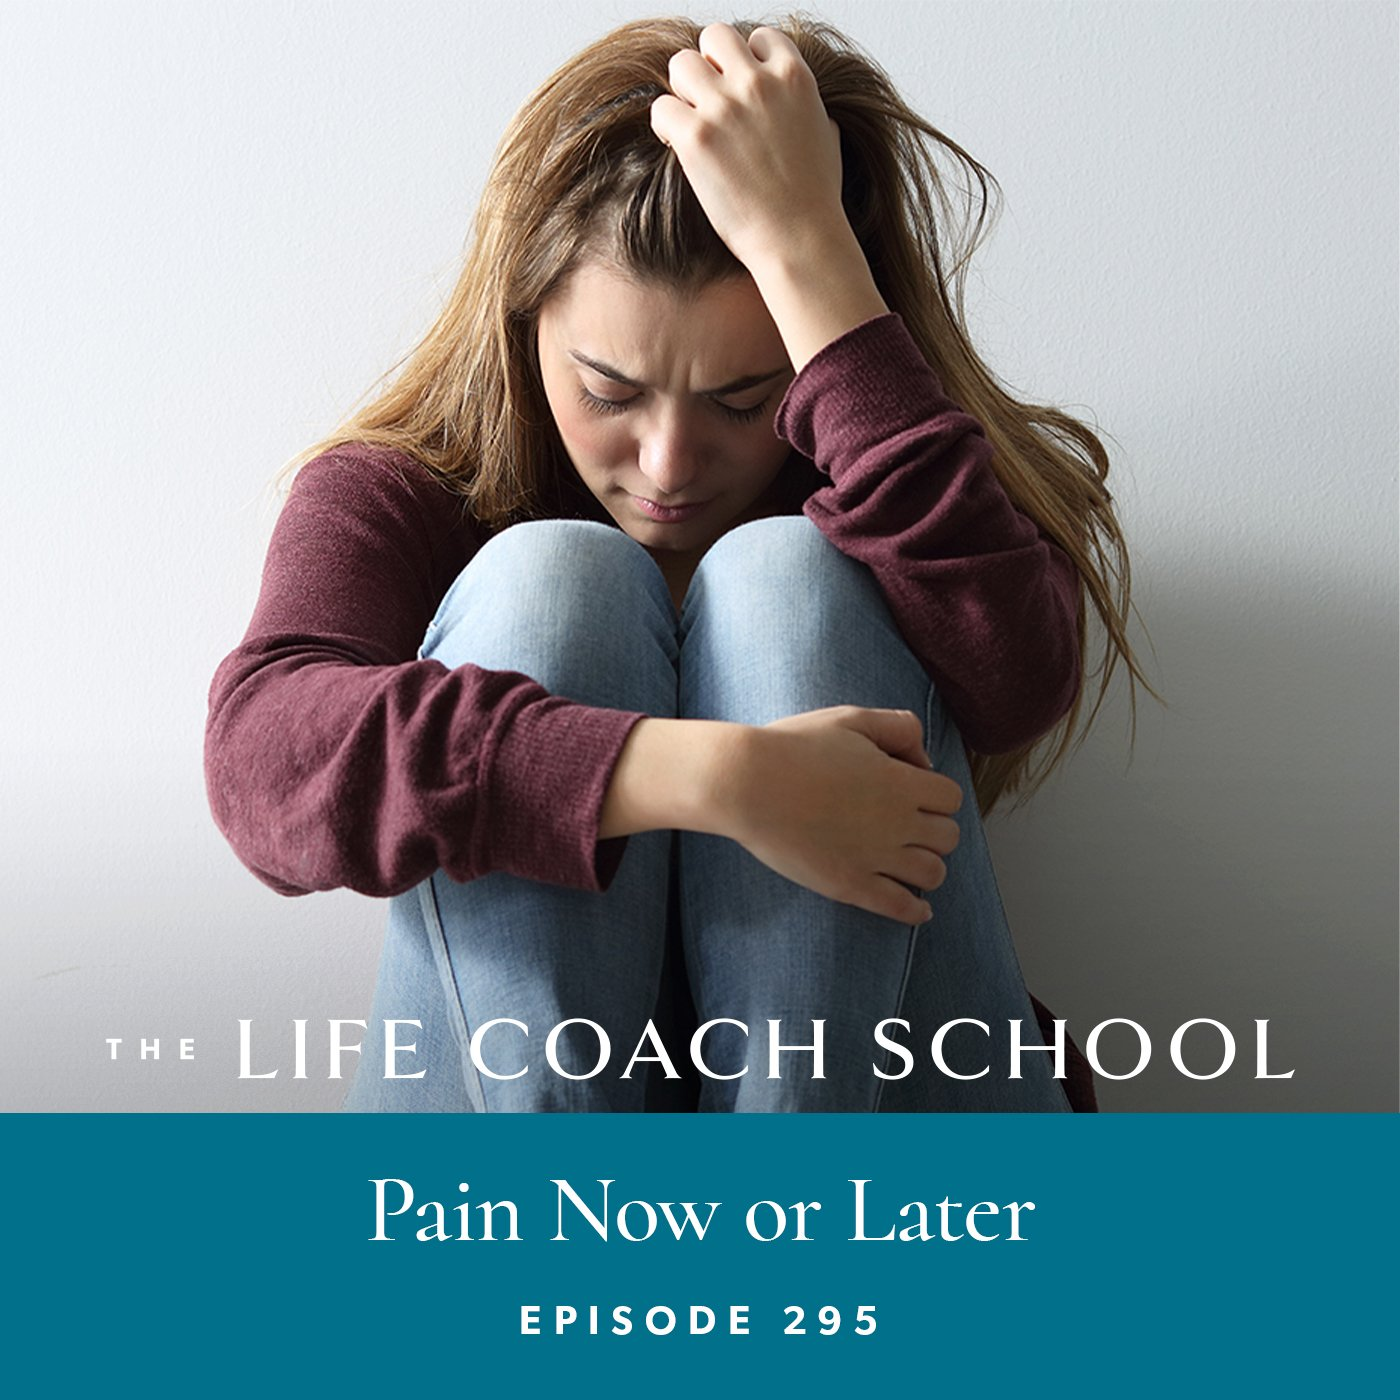 The Life Coach School Podcast with Brooke Castillo | Episode 295 | Pain Now or Later